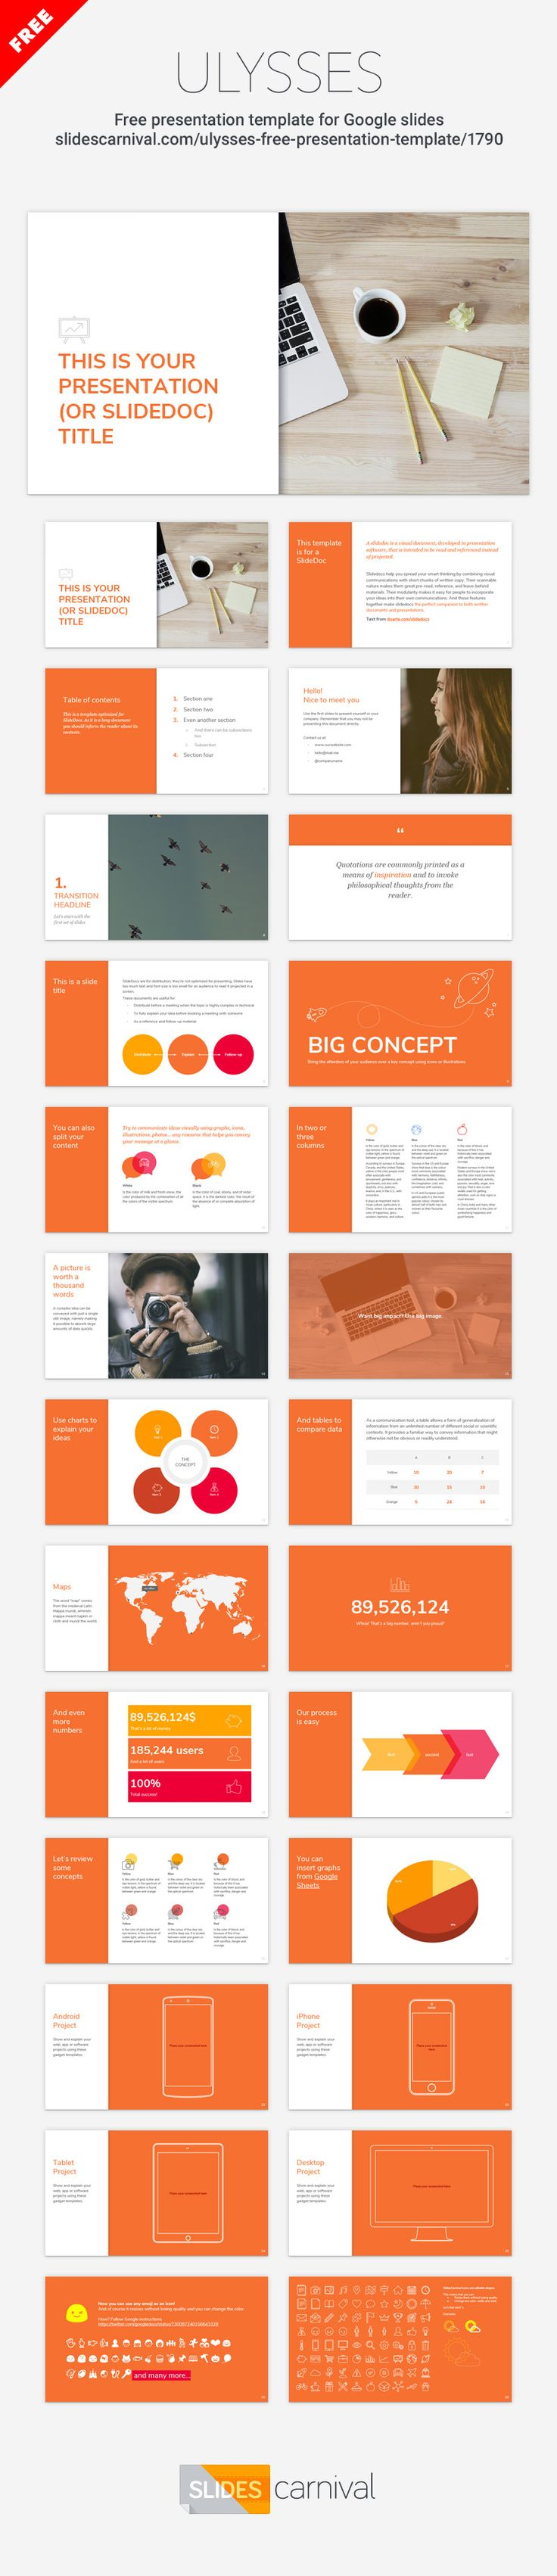 A clean theme designed to present your information in a professional format. This free presentation template it's optimized for presentations that are going to be printed or sent by mail as work documents (known as slidedocs). You can keep the lively orange color or choose another that matches your corporate identity, as all elements and slides are customizable edit them easily to fit your requirements. This theme gives you all the tools you need to effectively communicate your message.